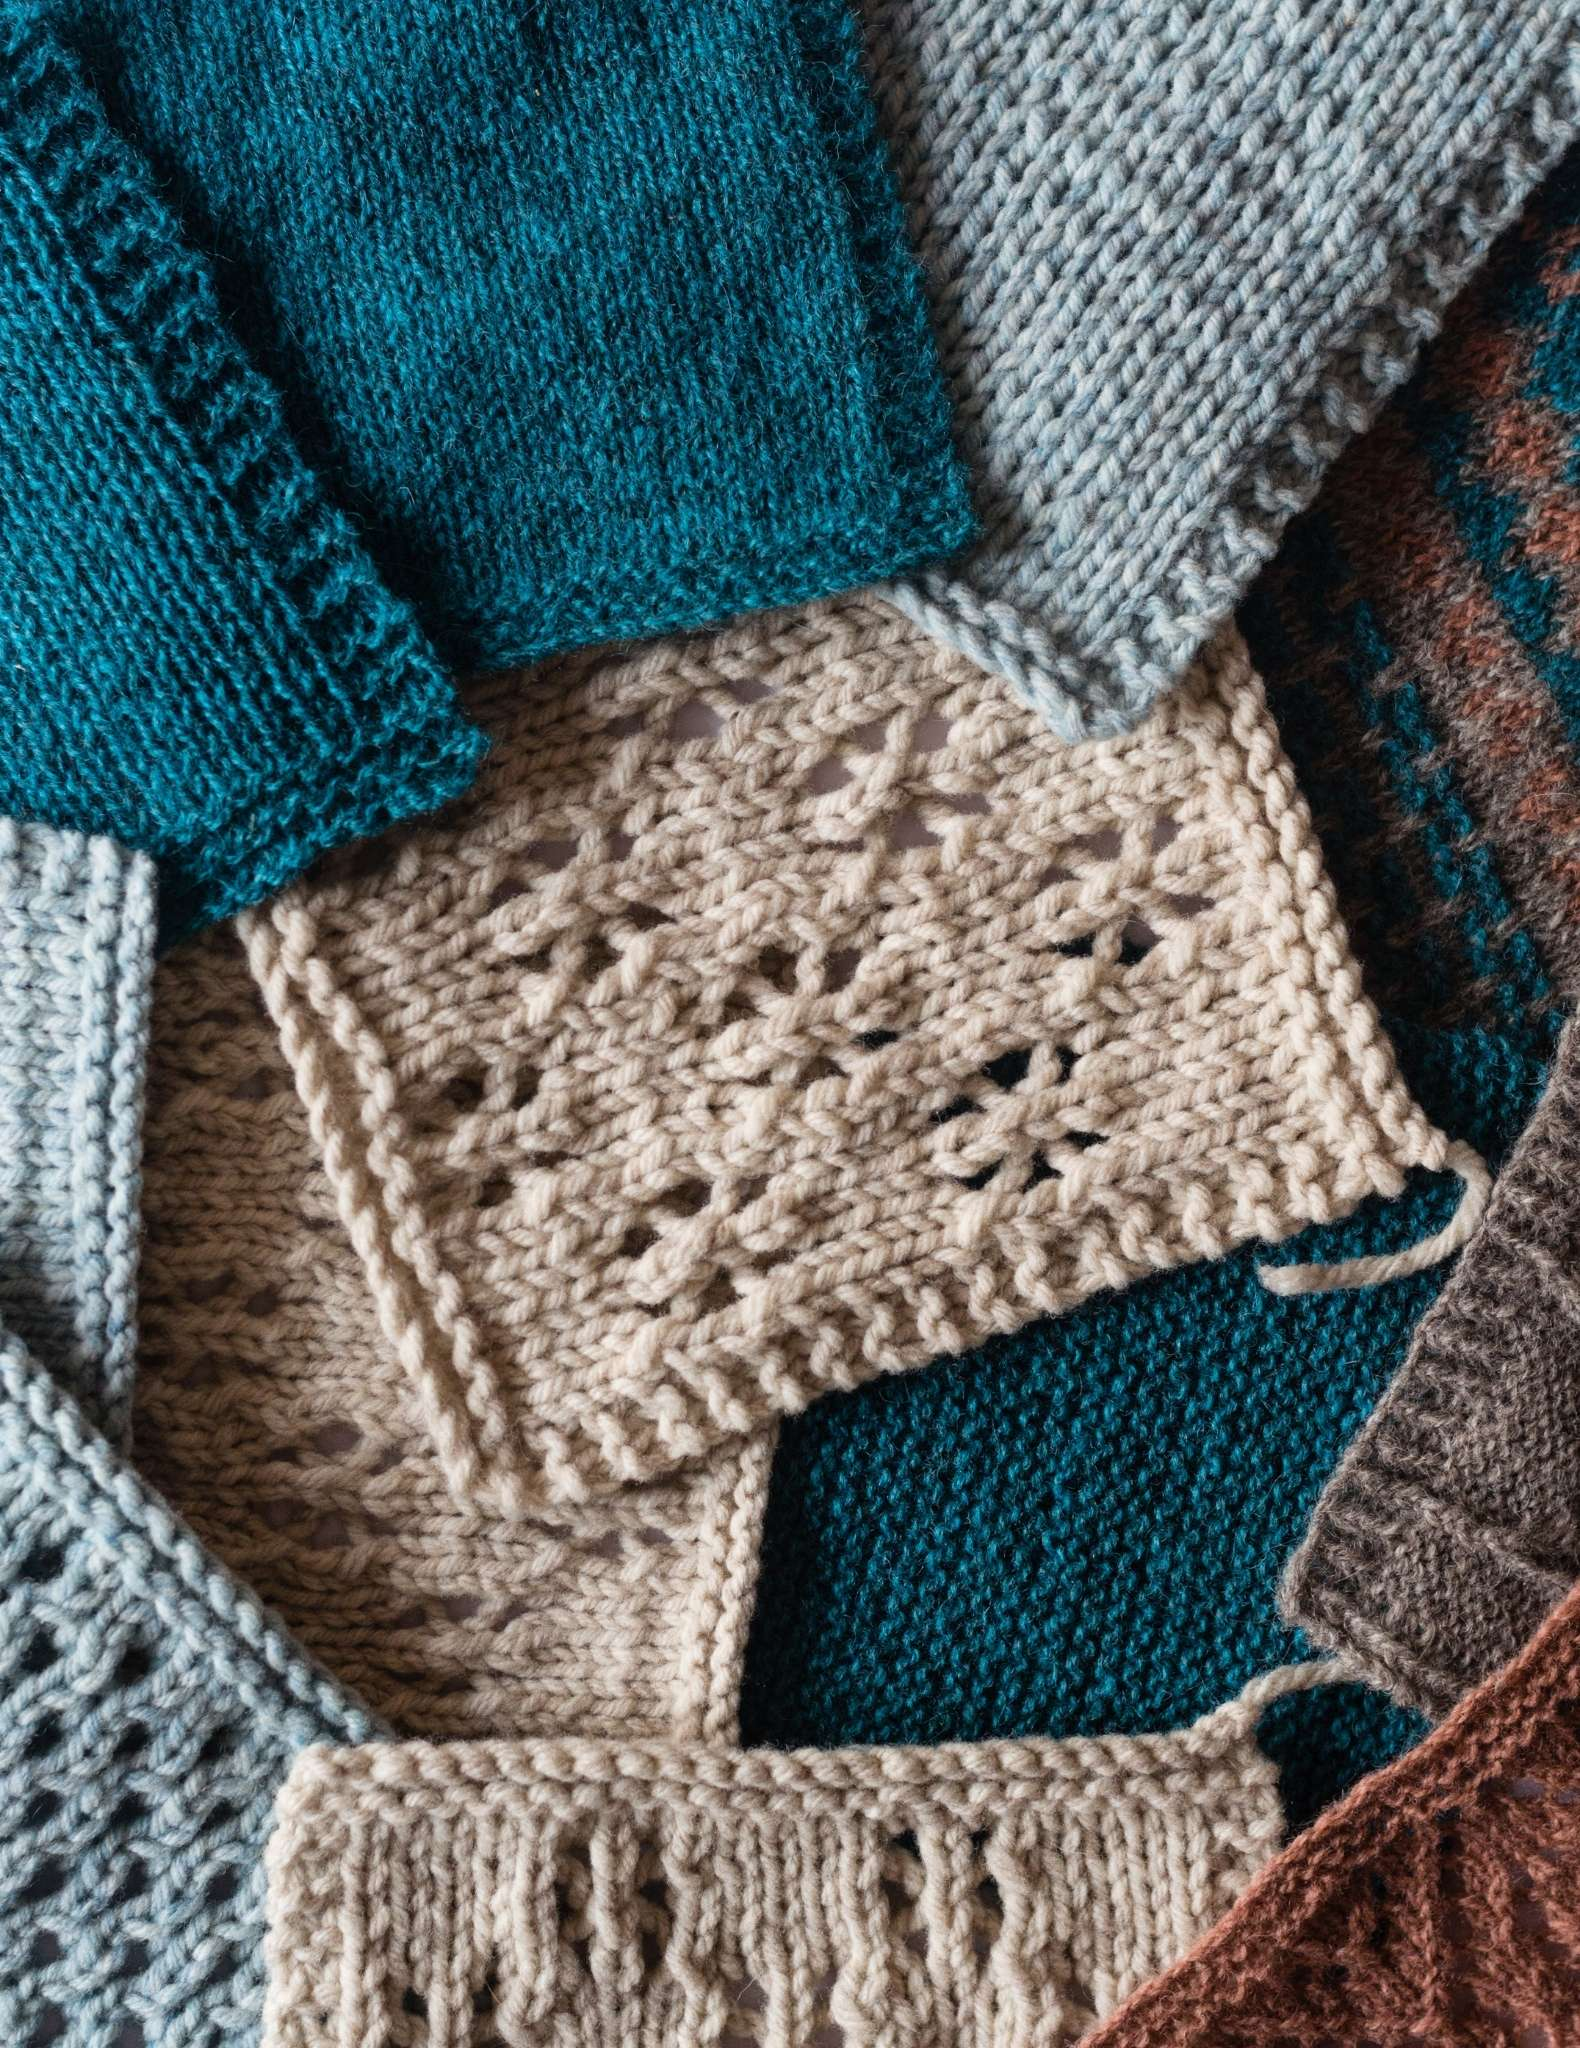 Learn to knit: How to knit a swatch